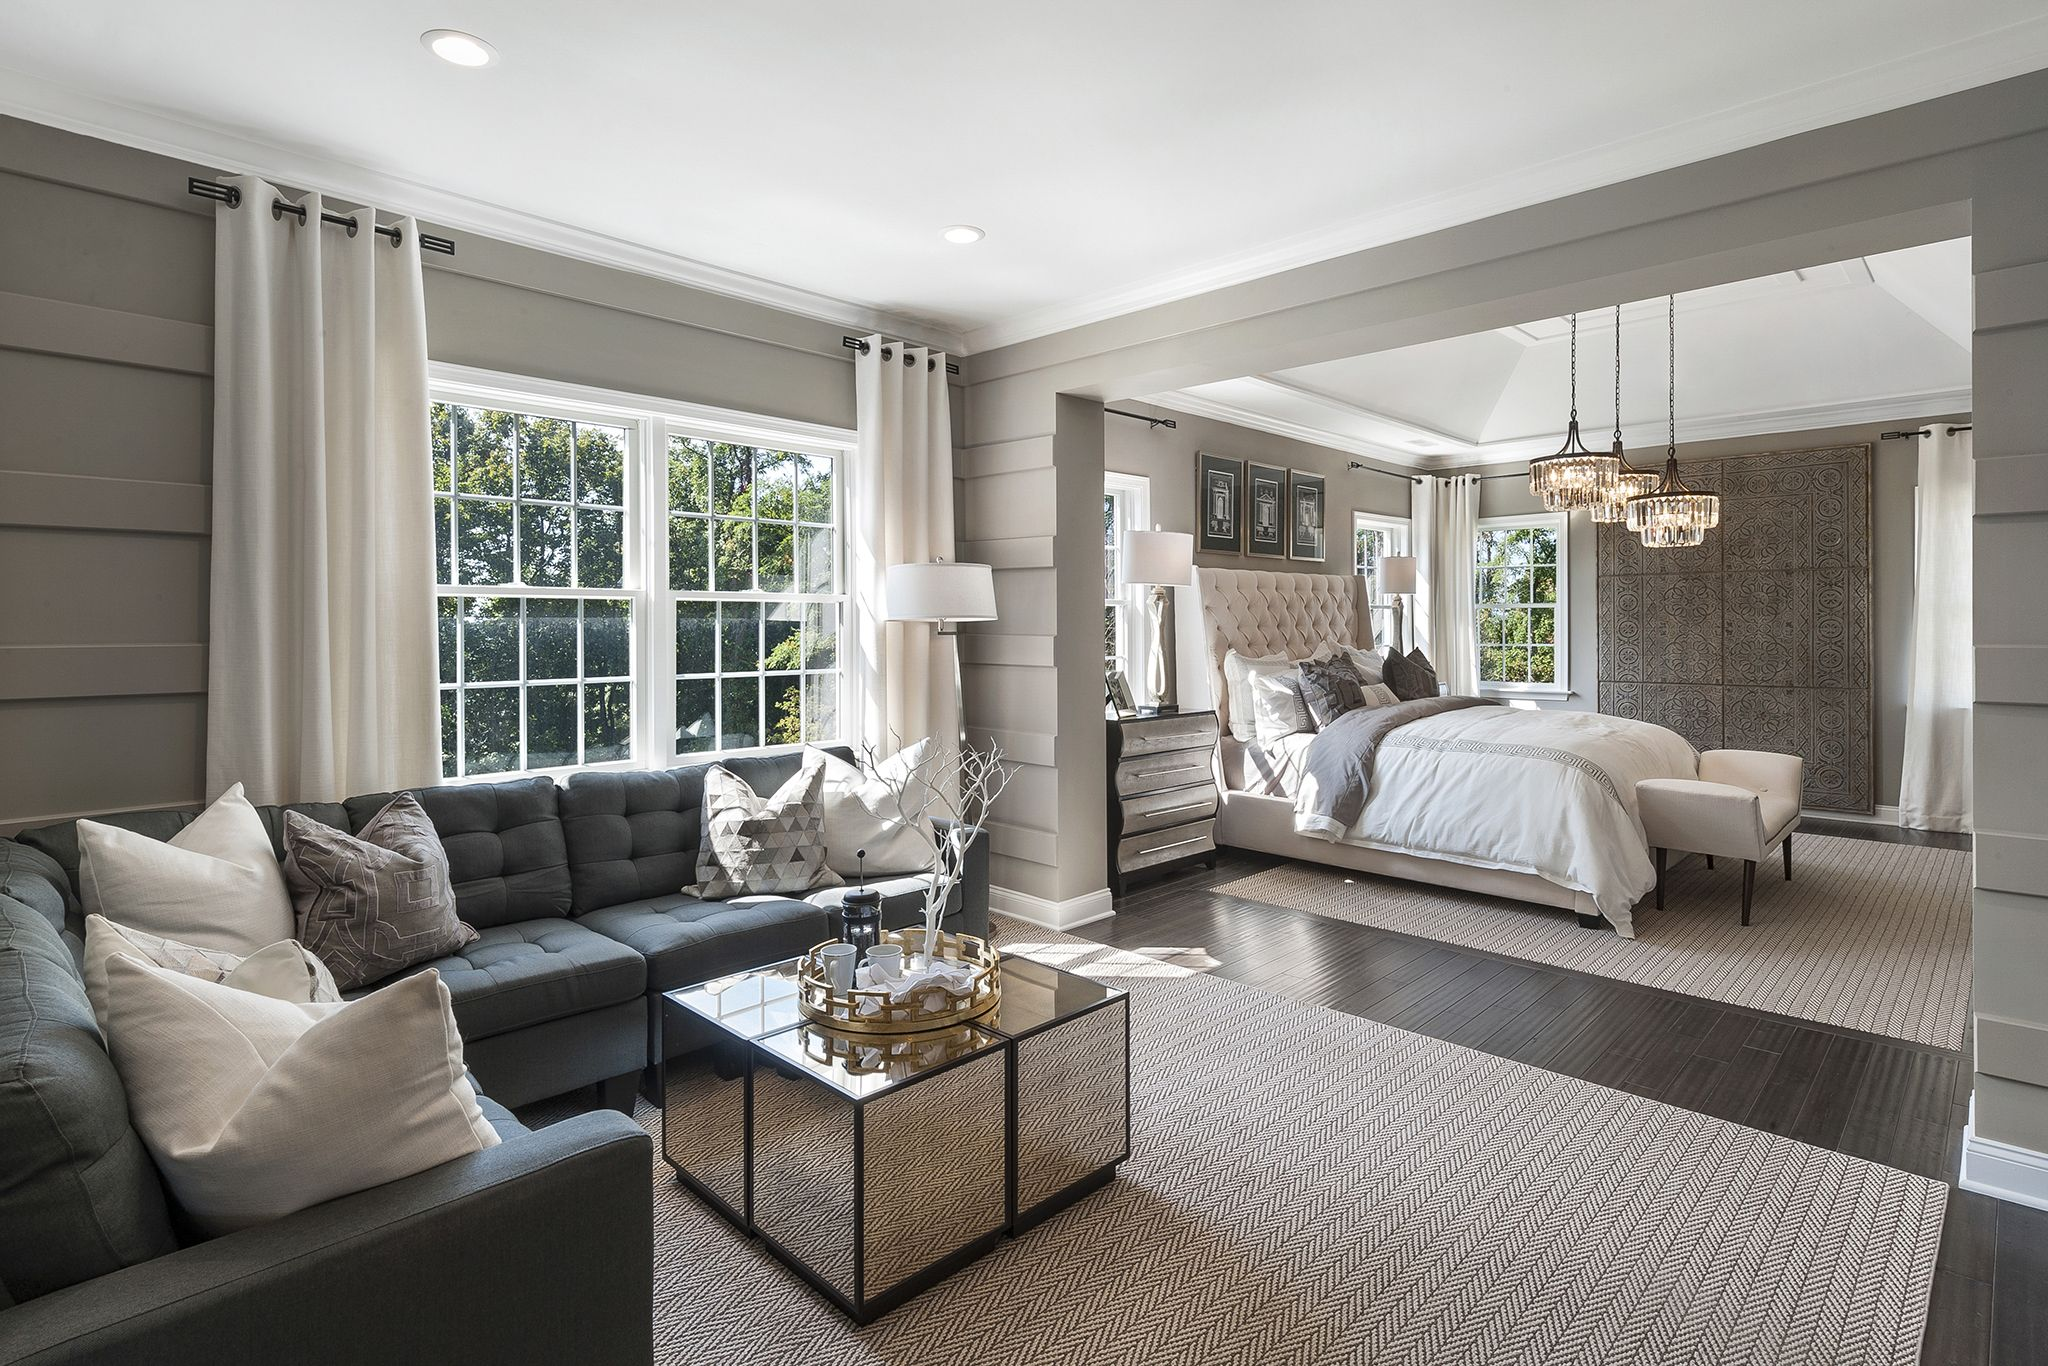 lighting really steals the show in this romantic room an on romantic trend master bedroom ideas id=68549